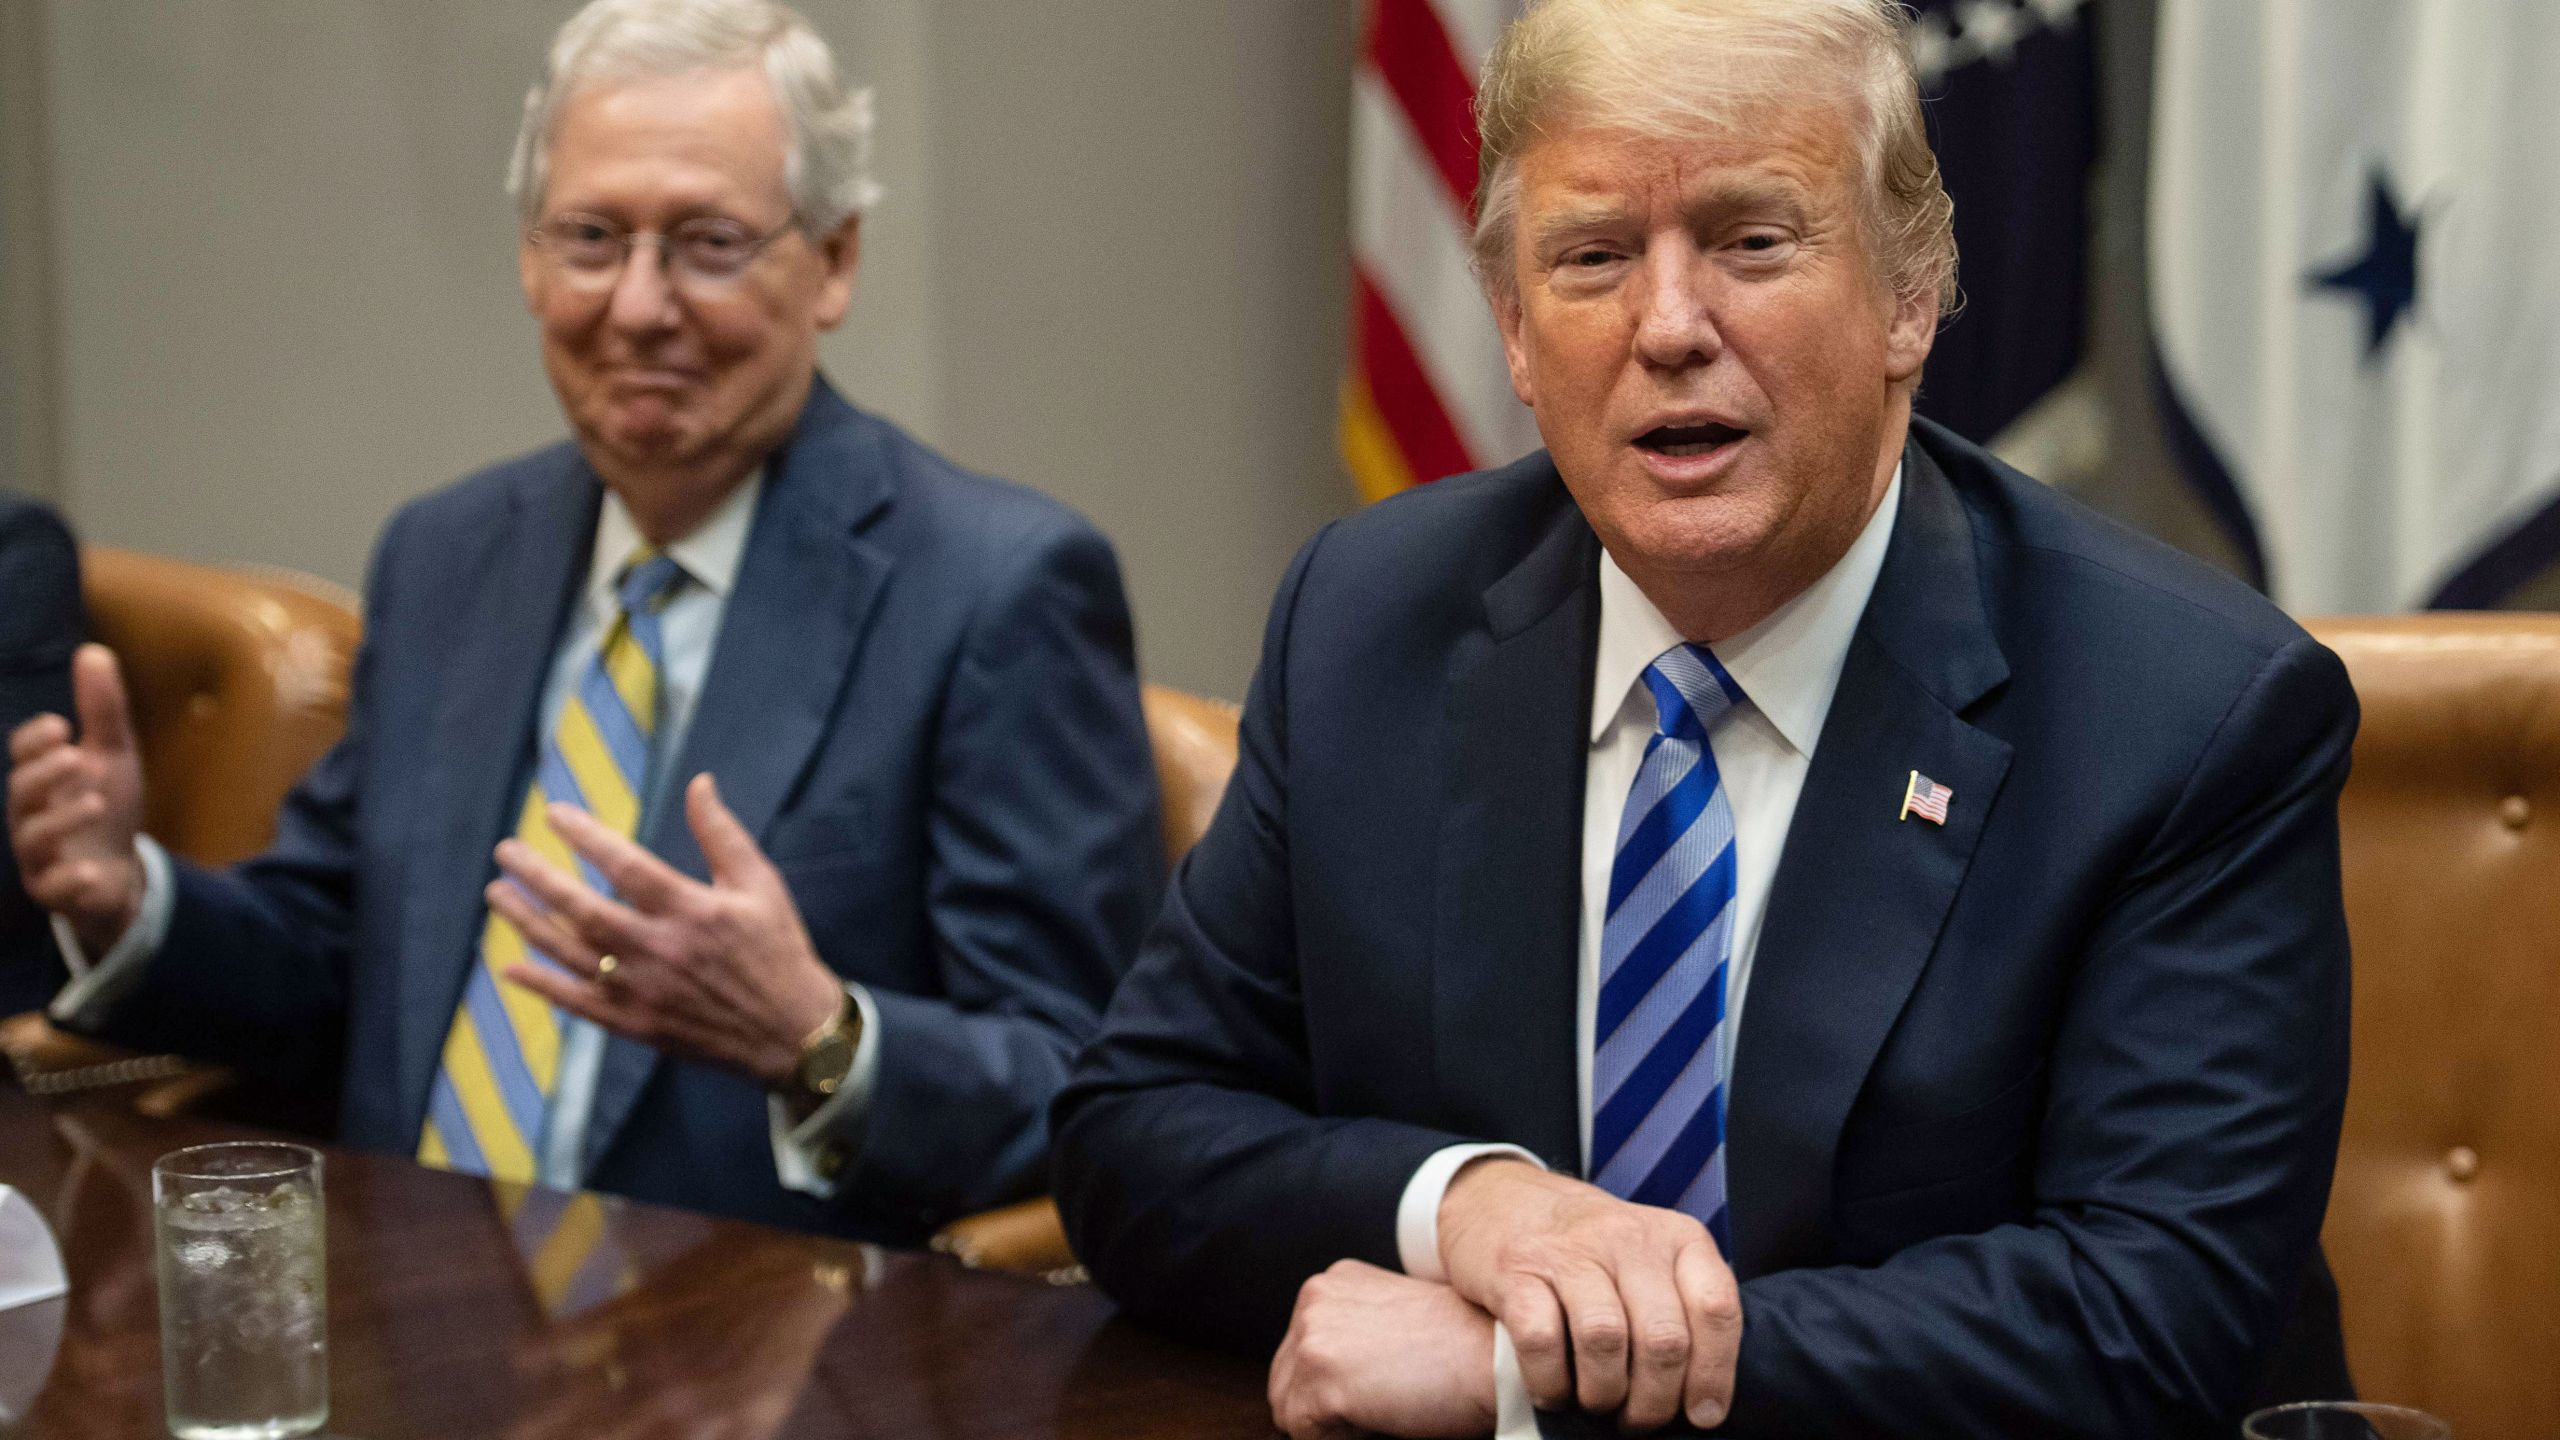 Senate Majority Leader Mitch McConnell, left, reacts as President Donald Trump speaks to the press before a meeting with Republican Congressional leaders at the White House in Washington, DC, on September 5, 2018. (NICHOLAS KAMM/AFP via Getty Images)